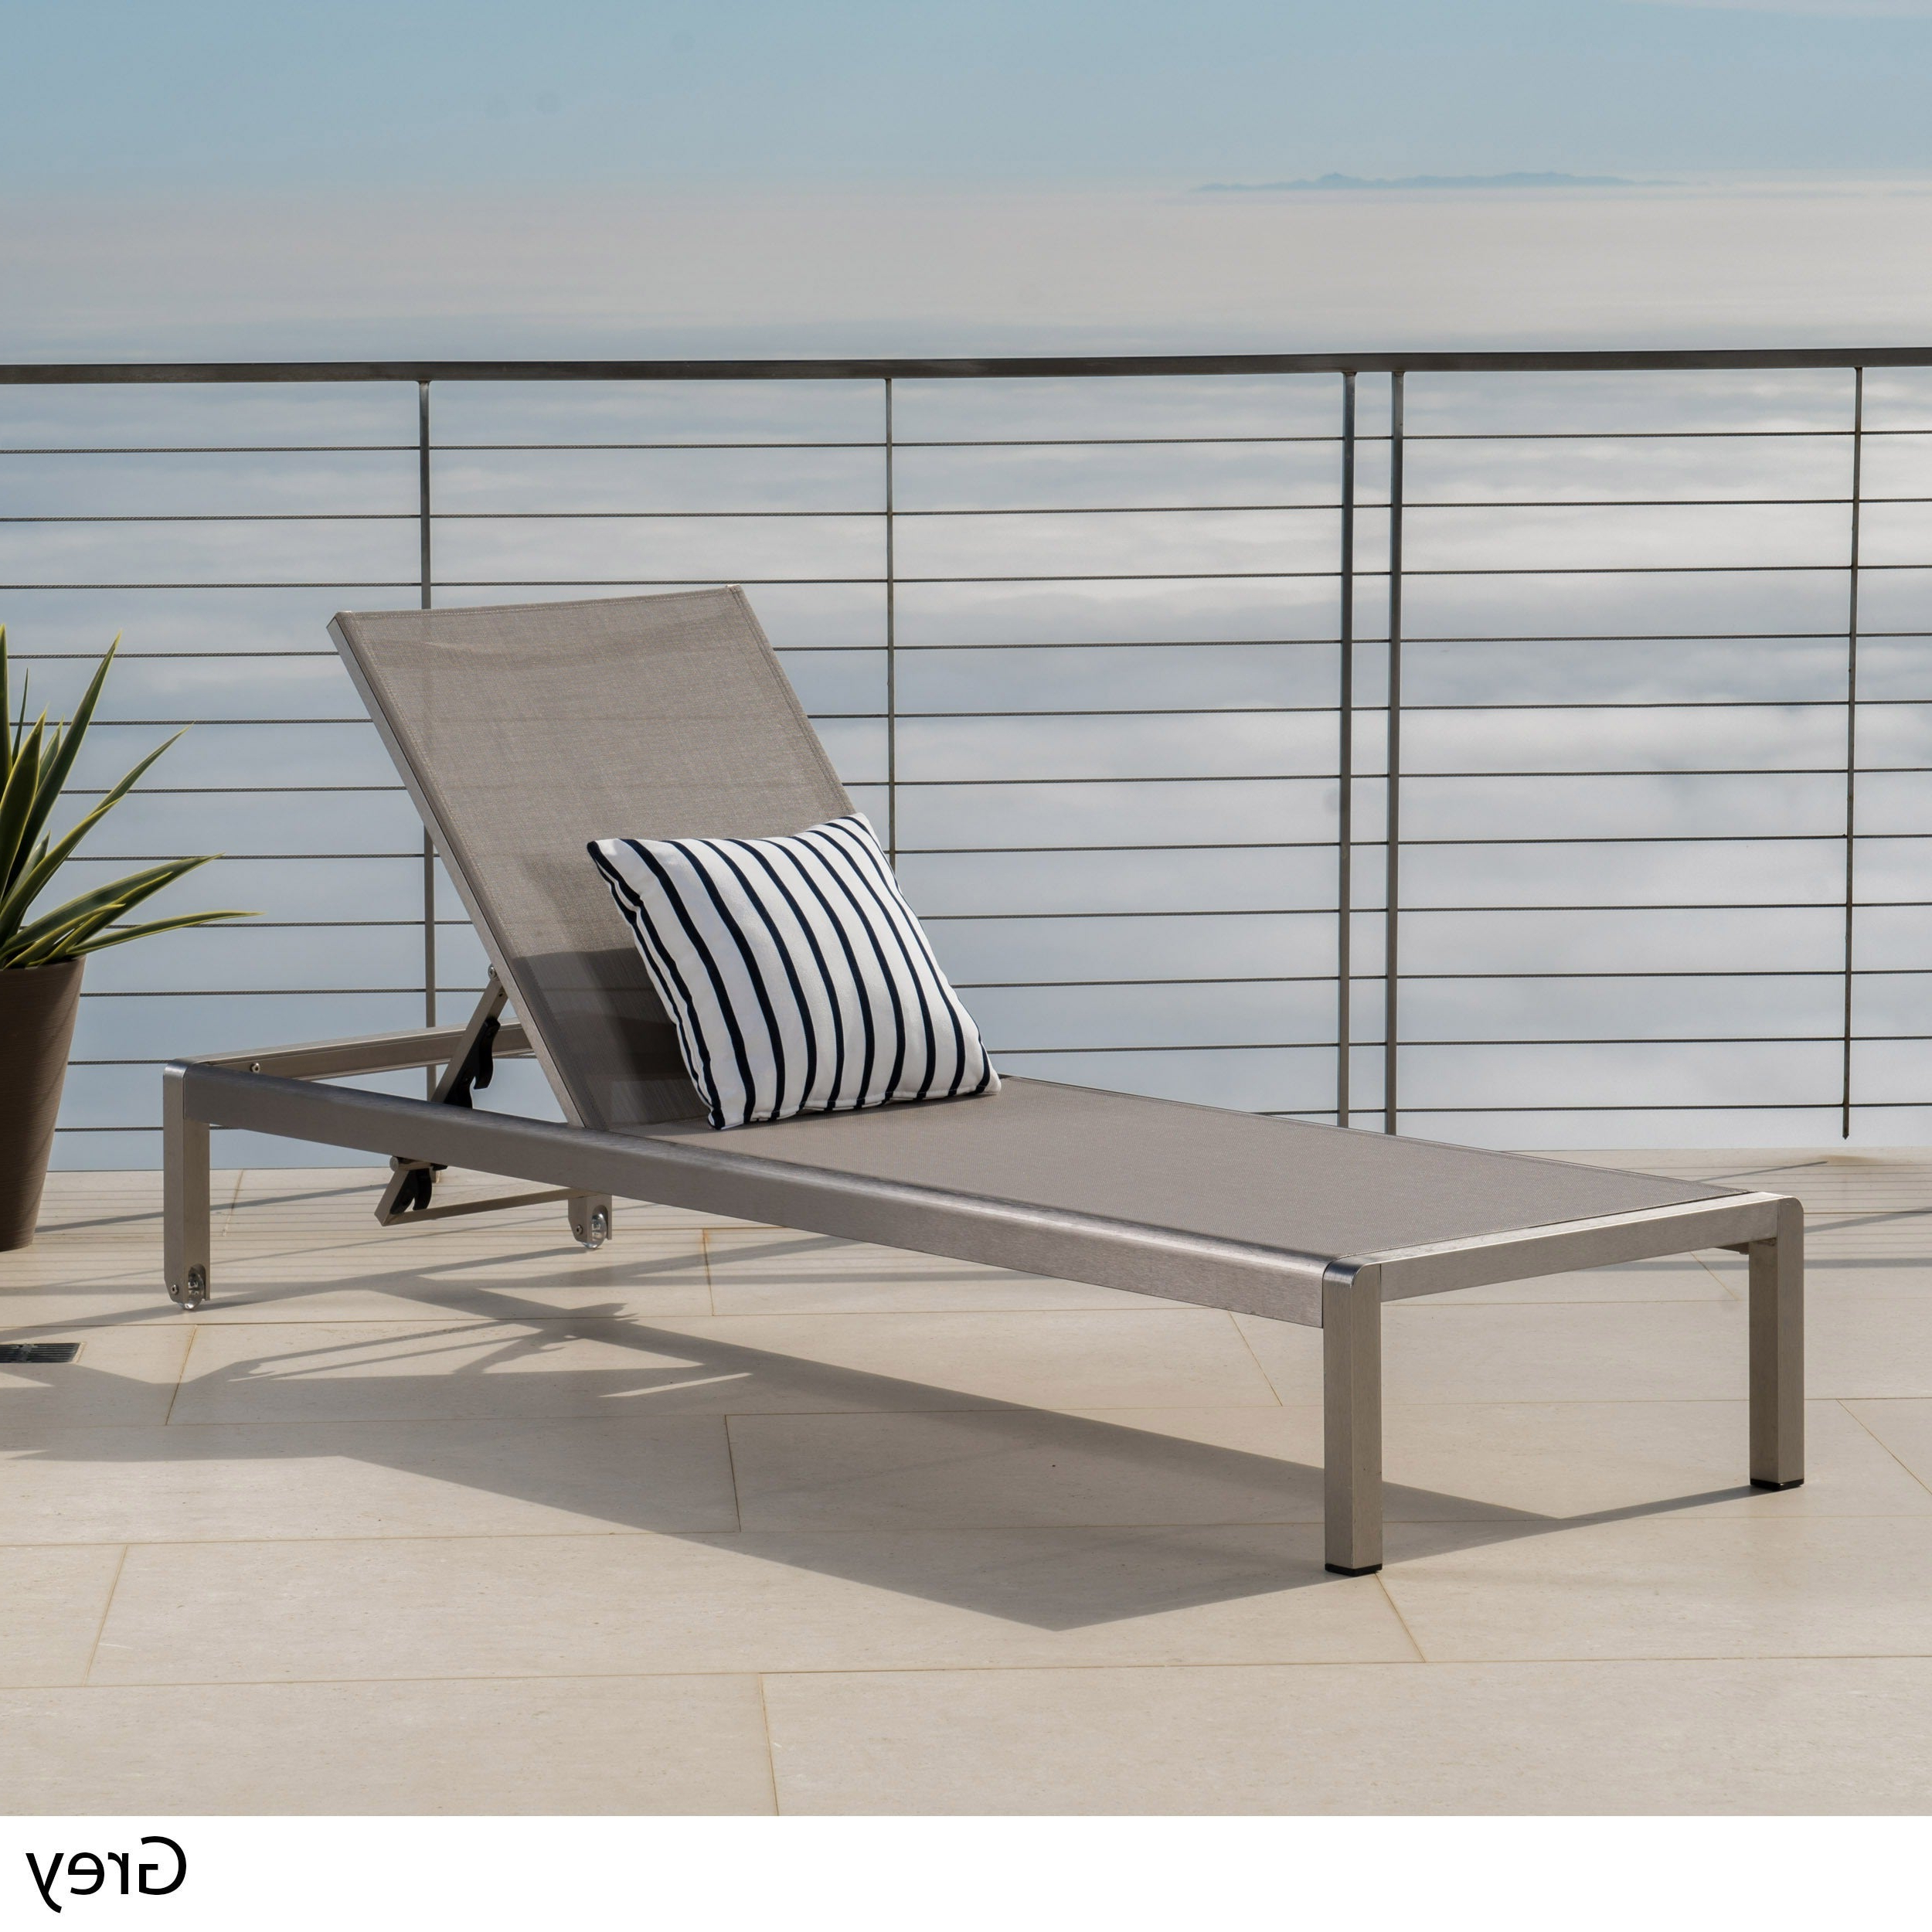 Famous Cape Coral Outdoor Chaise Lounges With Cushion Intended For Cape Coral Outdoor Aluminum Adjustable Chaise Loungechristopher Knight Home (View 4 of 25)